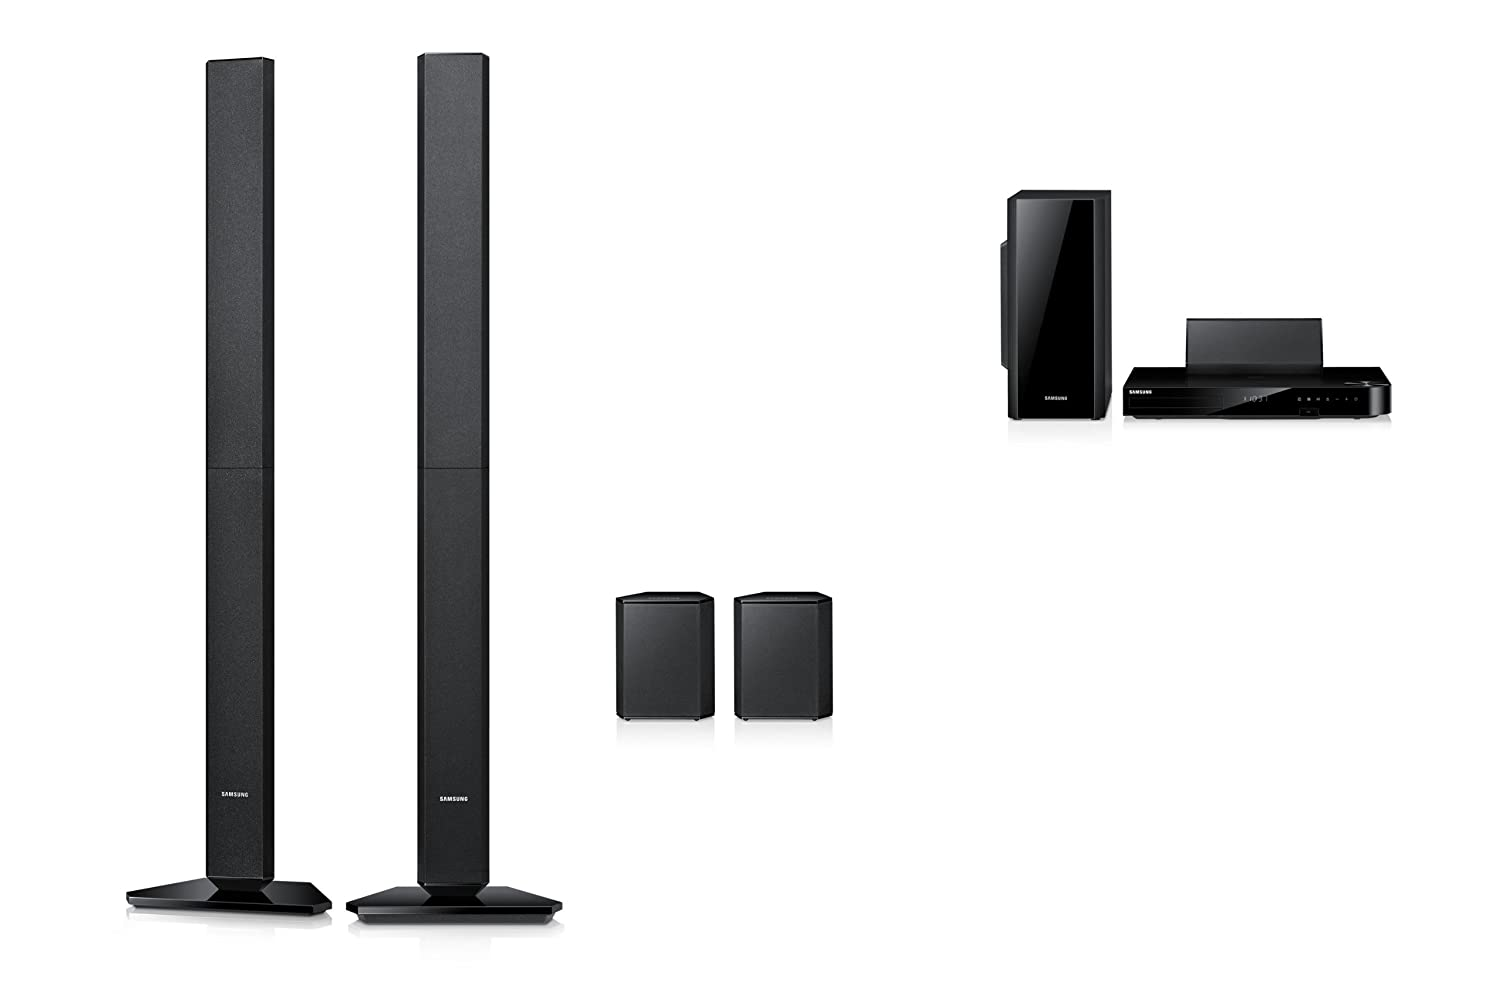 Samsung HT-F5530 3D Blu-ray Home Cinema Windows 8 X64 Driver Download